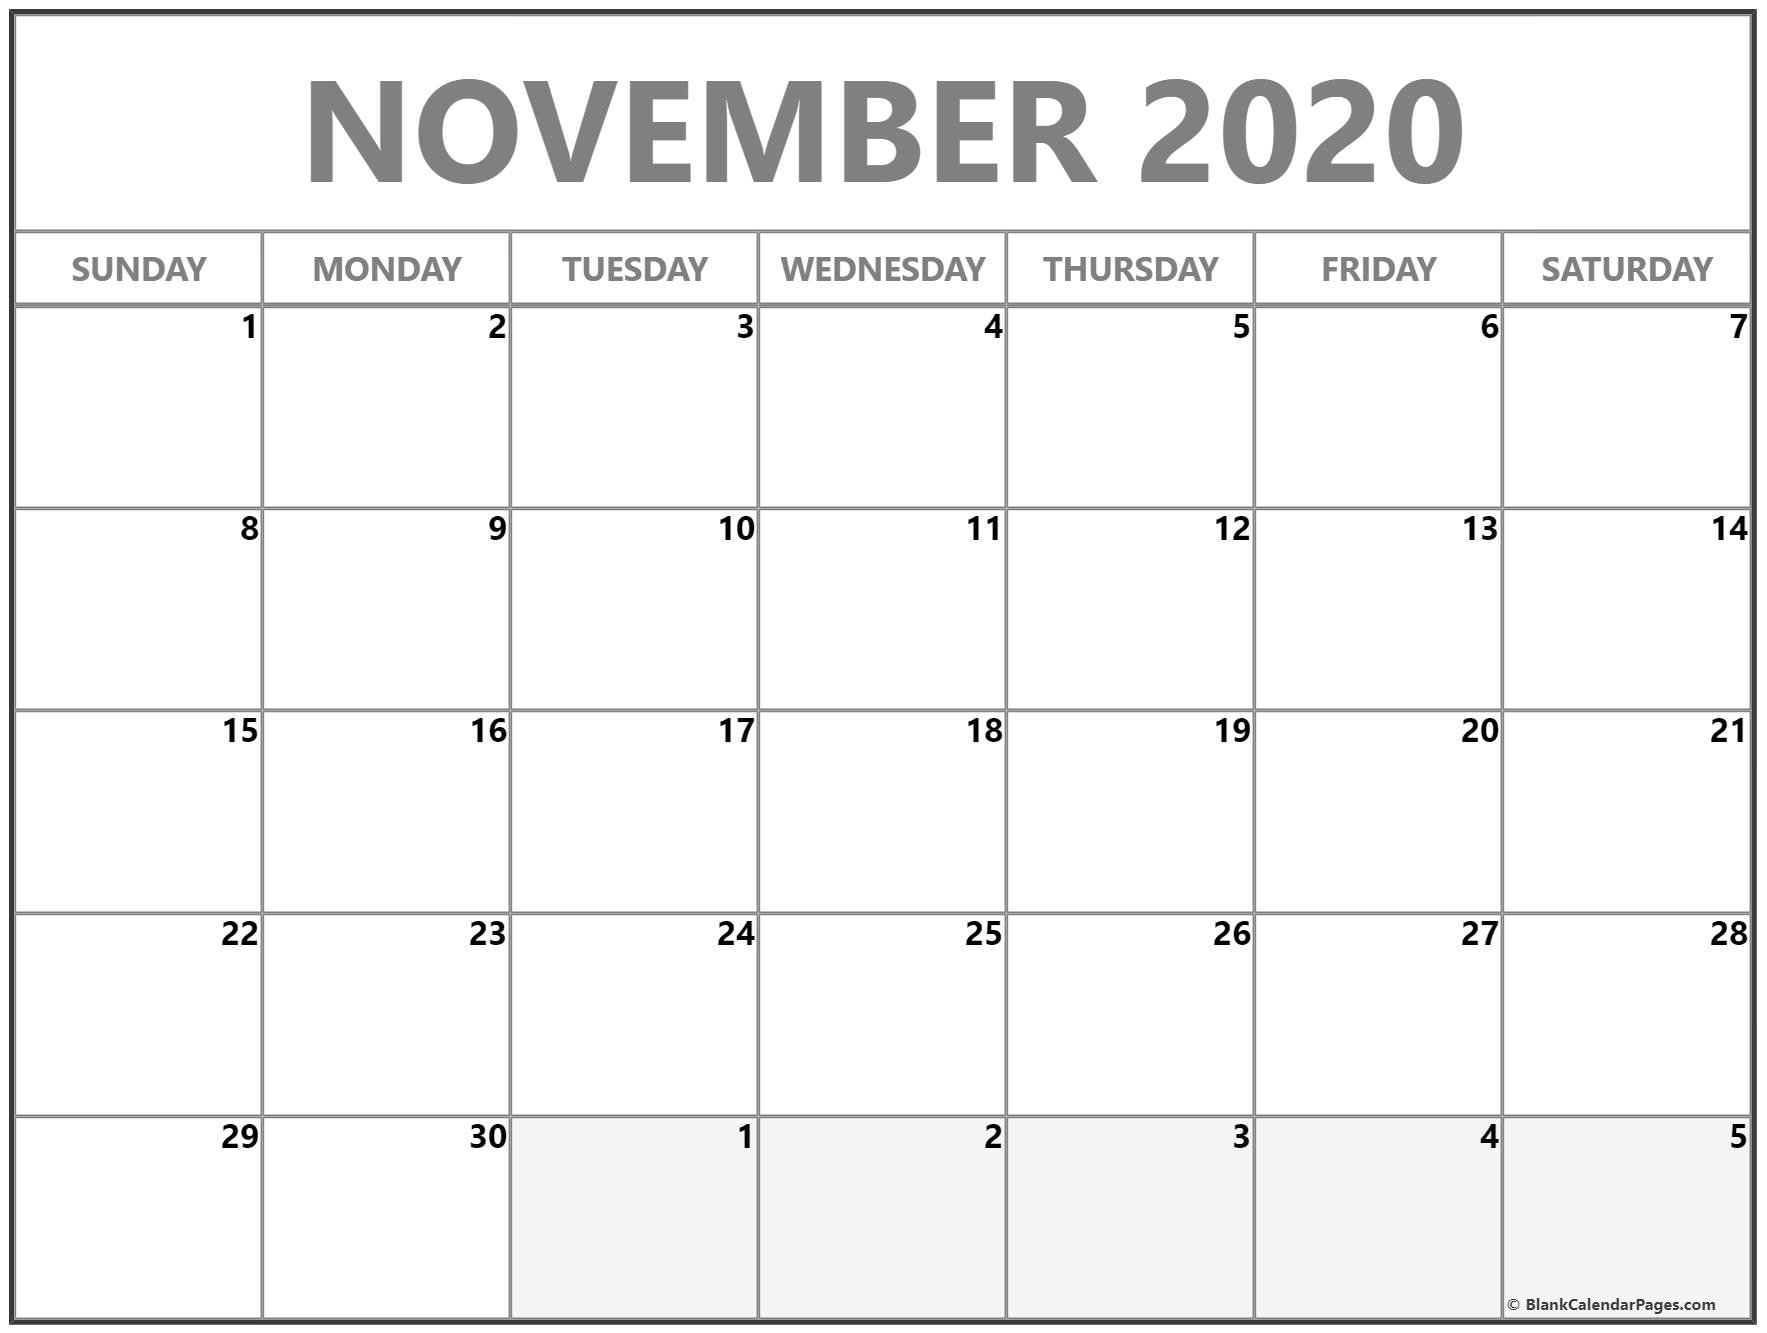 November 2020 Calendar | Free Printable Monthly Calendars  Novemner 2020 Full Page Calander Template